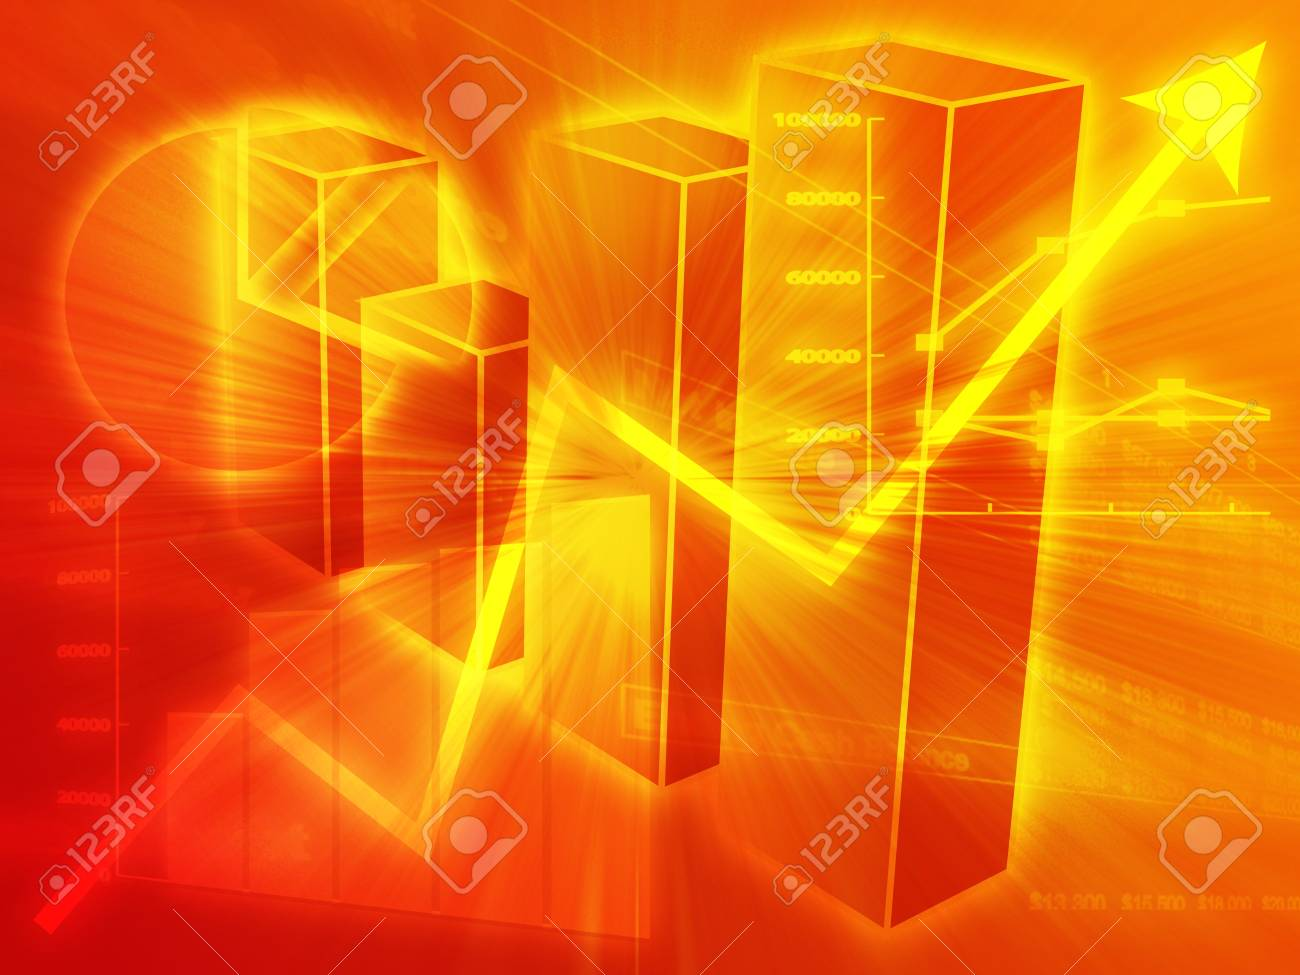 Illustration of Spreadsheet data and  charts in glowing wireframe style Stock Illustration - 3464369